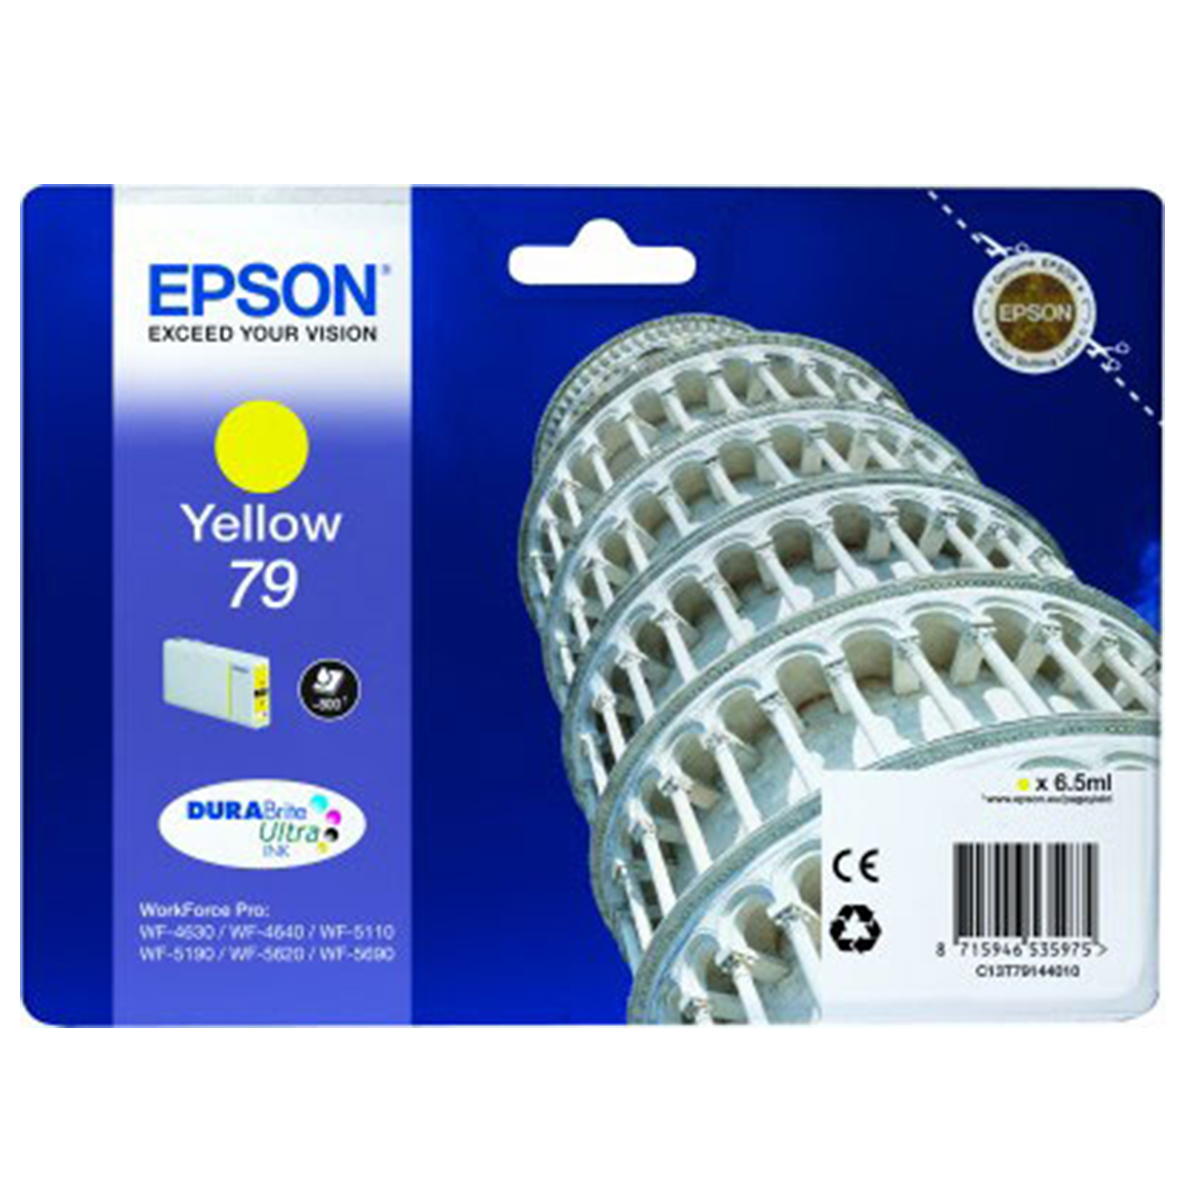 Epson 79 Durabrite Ink Cartridge Yellow